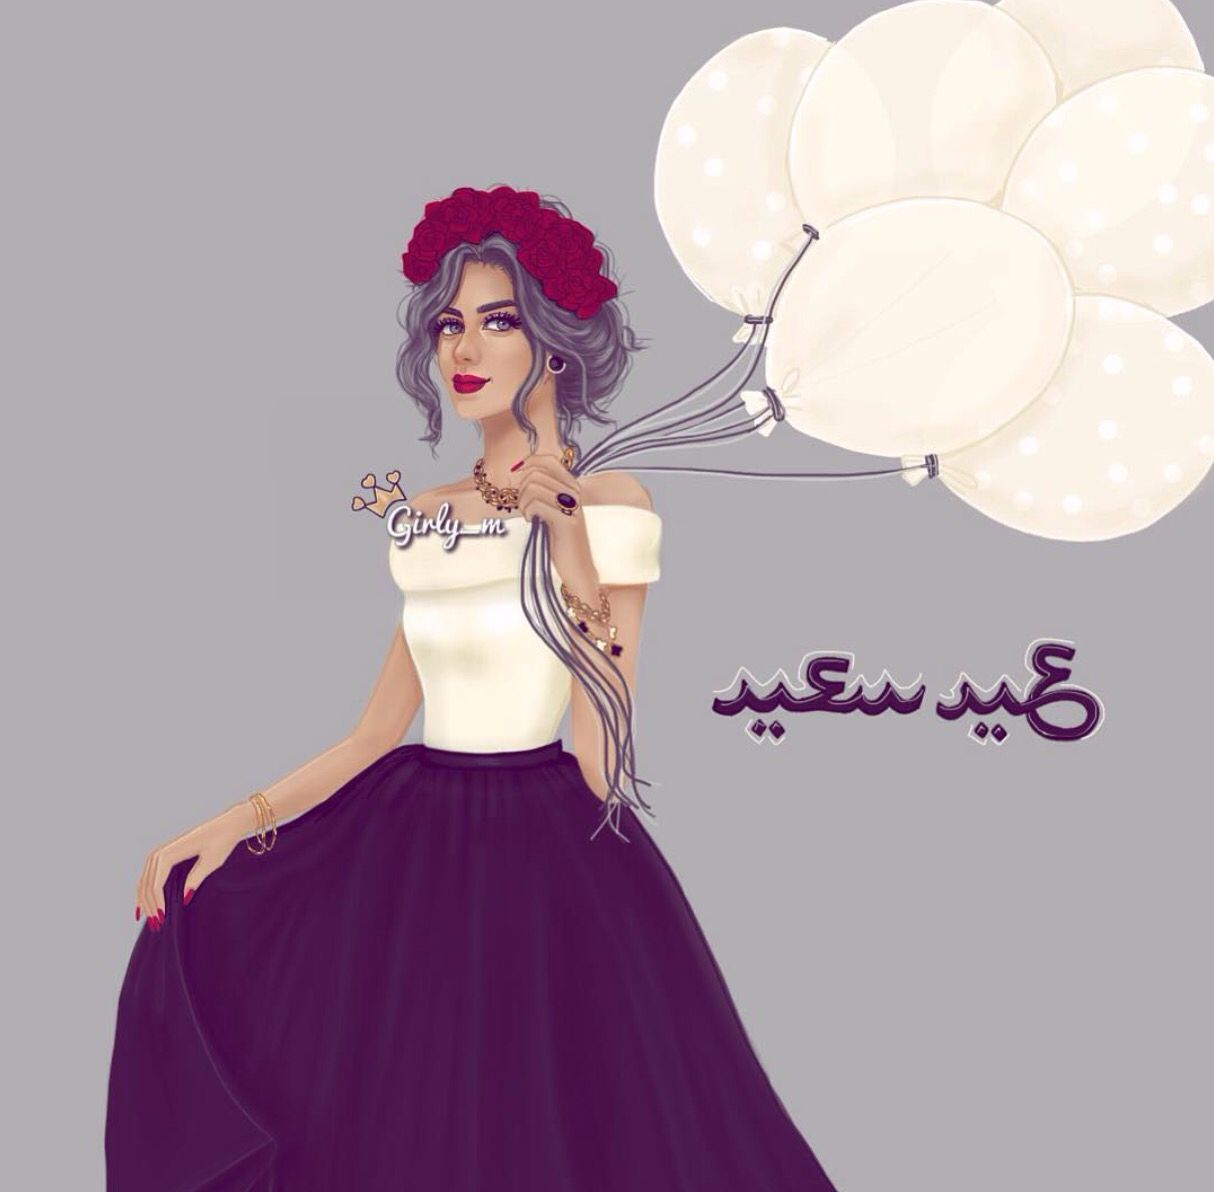 Girly M Girly M Pinterest Girly Drawings And